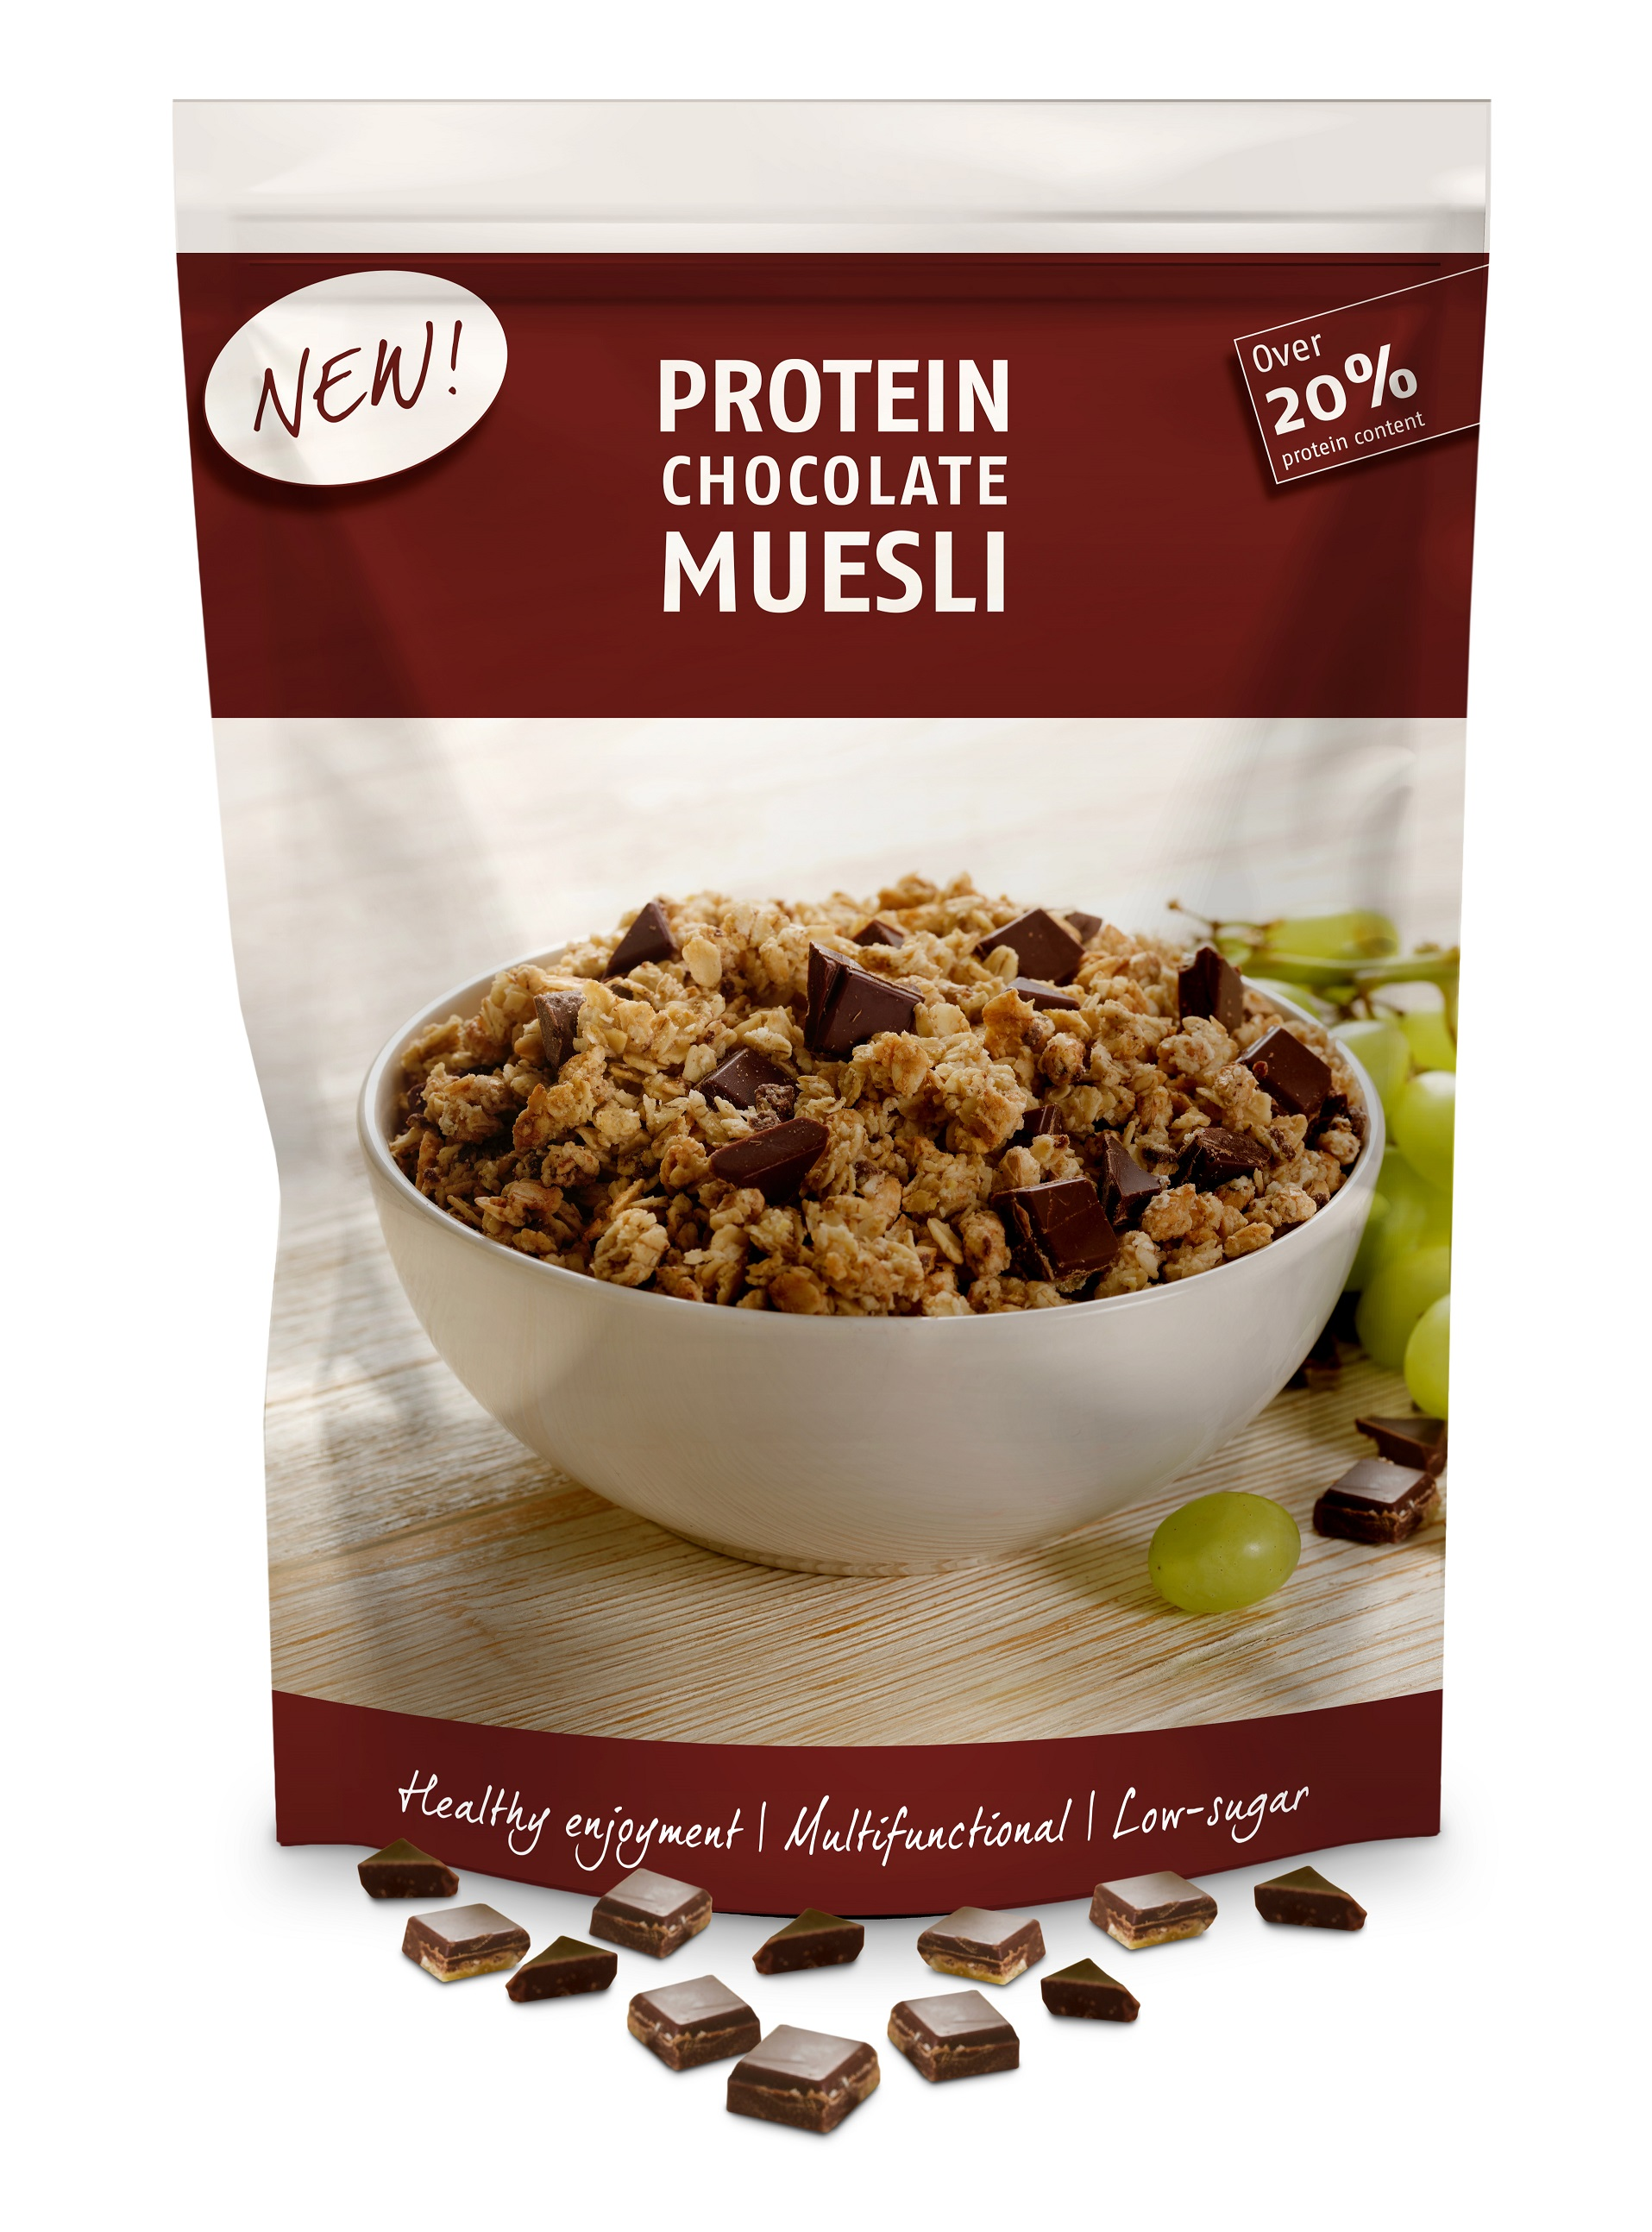 Protein-enriched chocolate and compounds increase the incentive to buy  HERZA Schokolade combines the protein trend with enjoyment